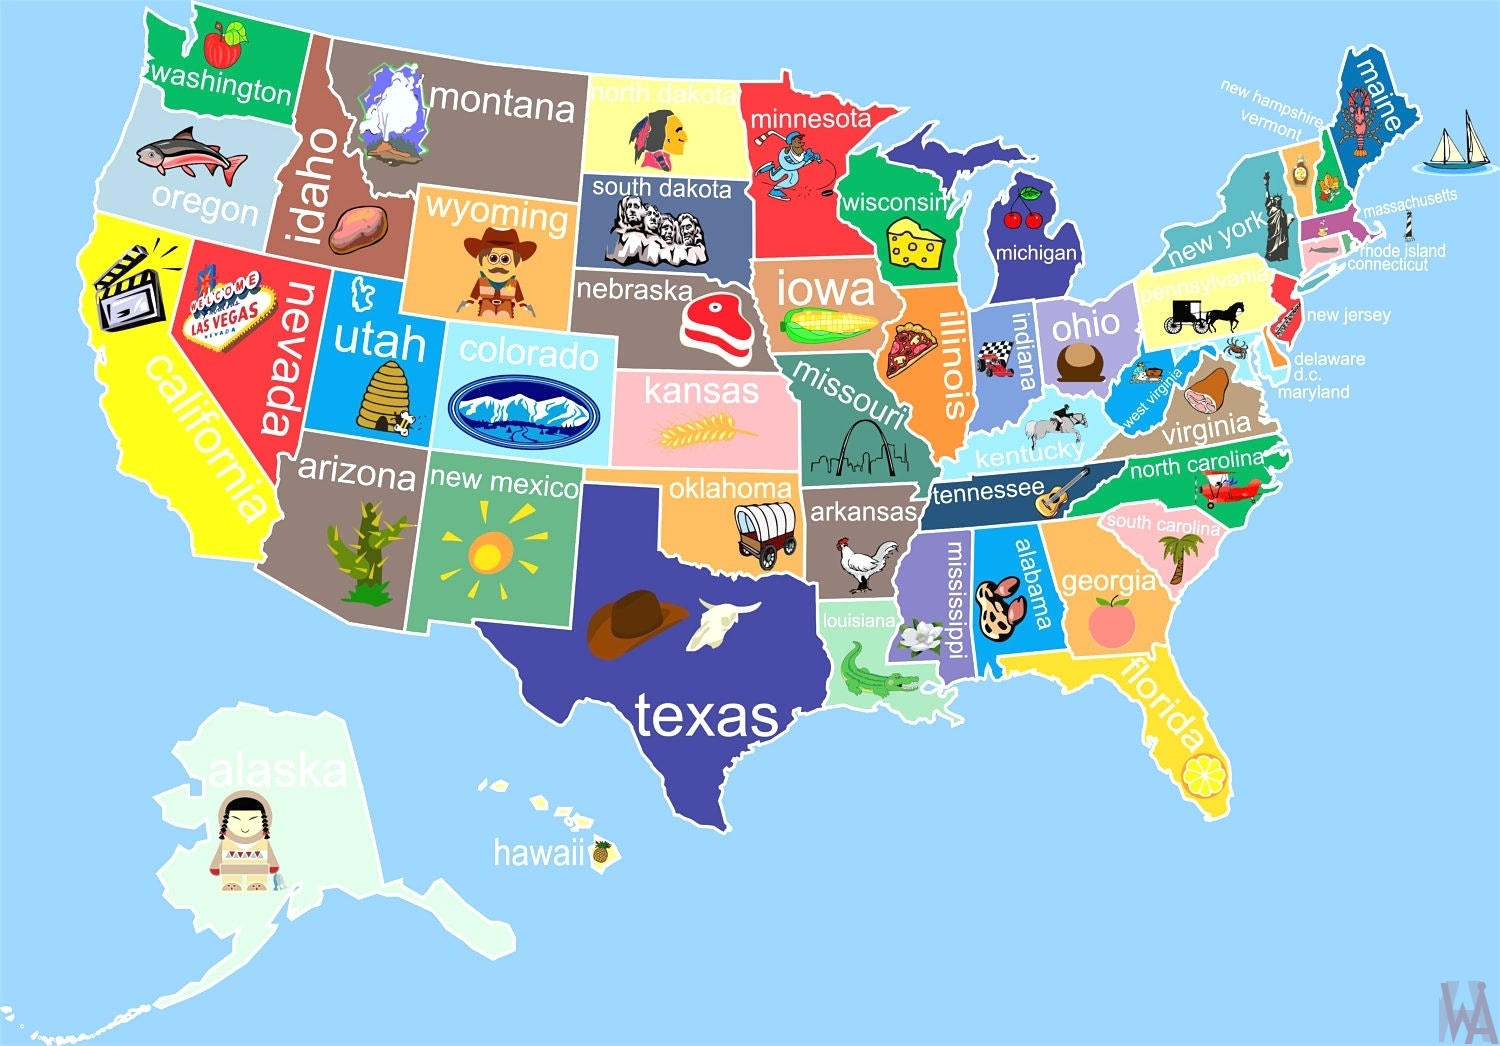 State Wise major tourist attractions maps of the USA | WhatsAnswer